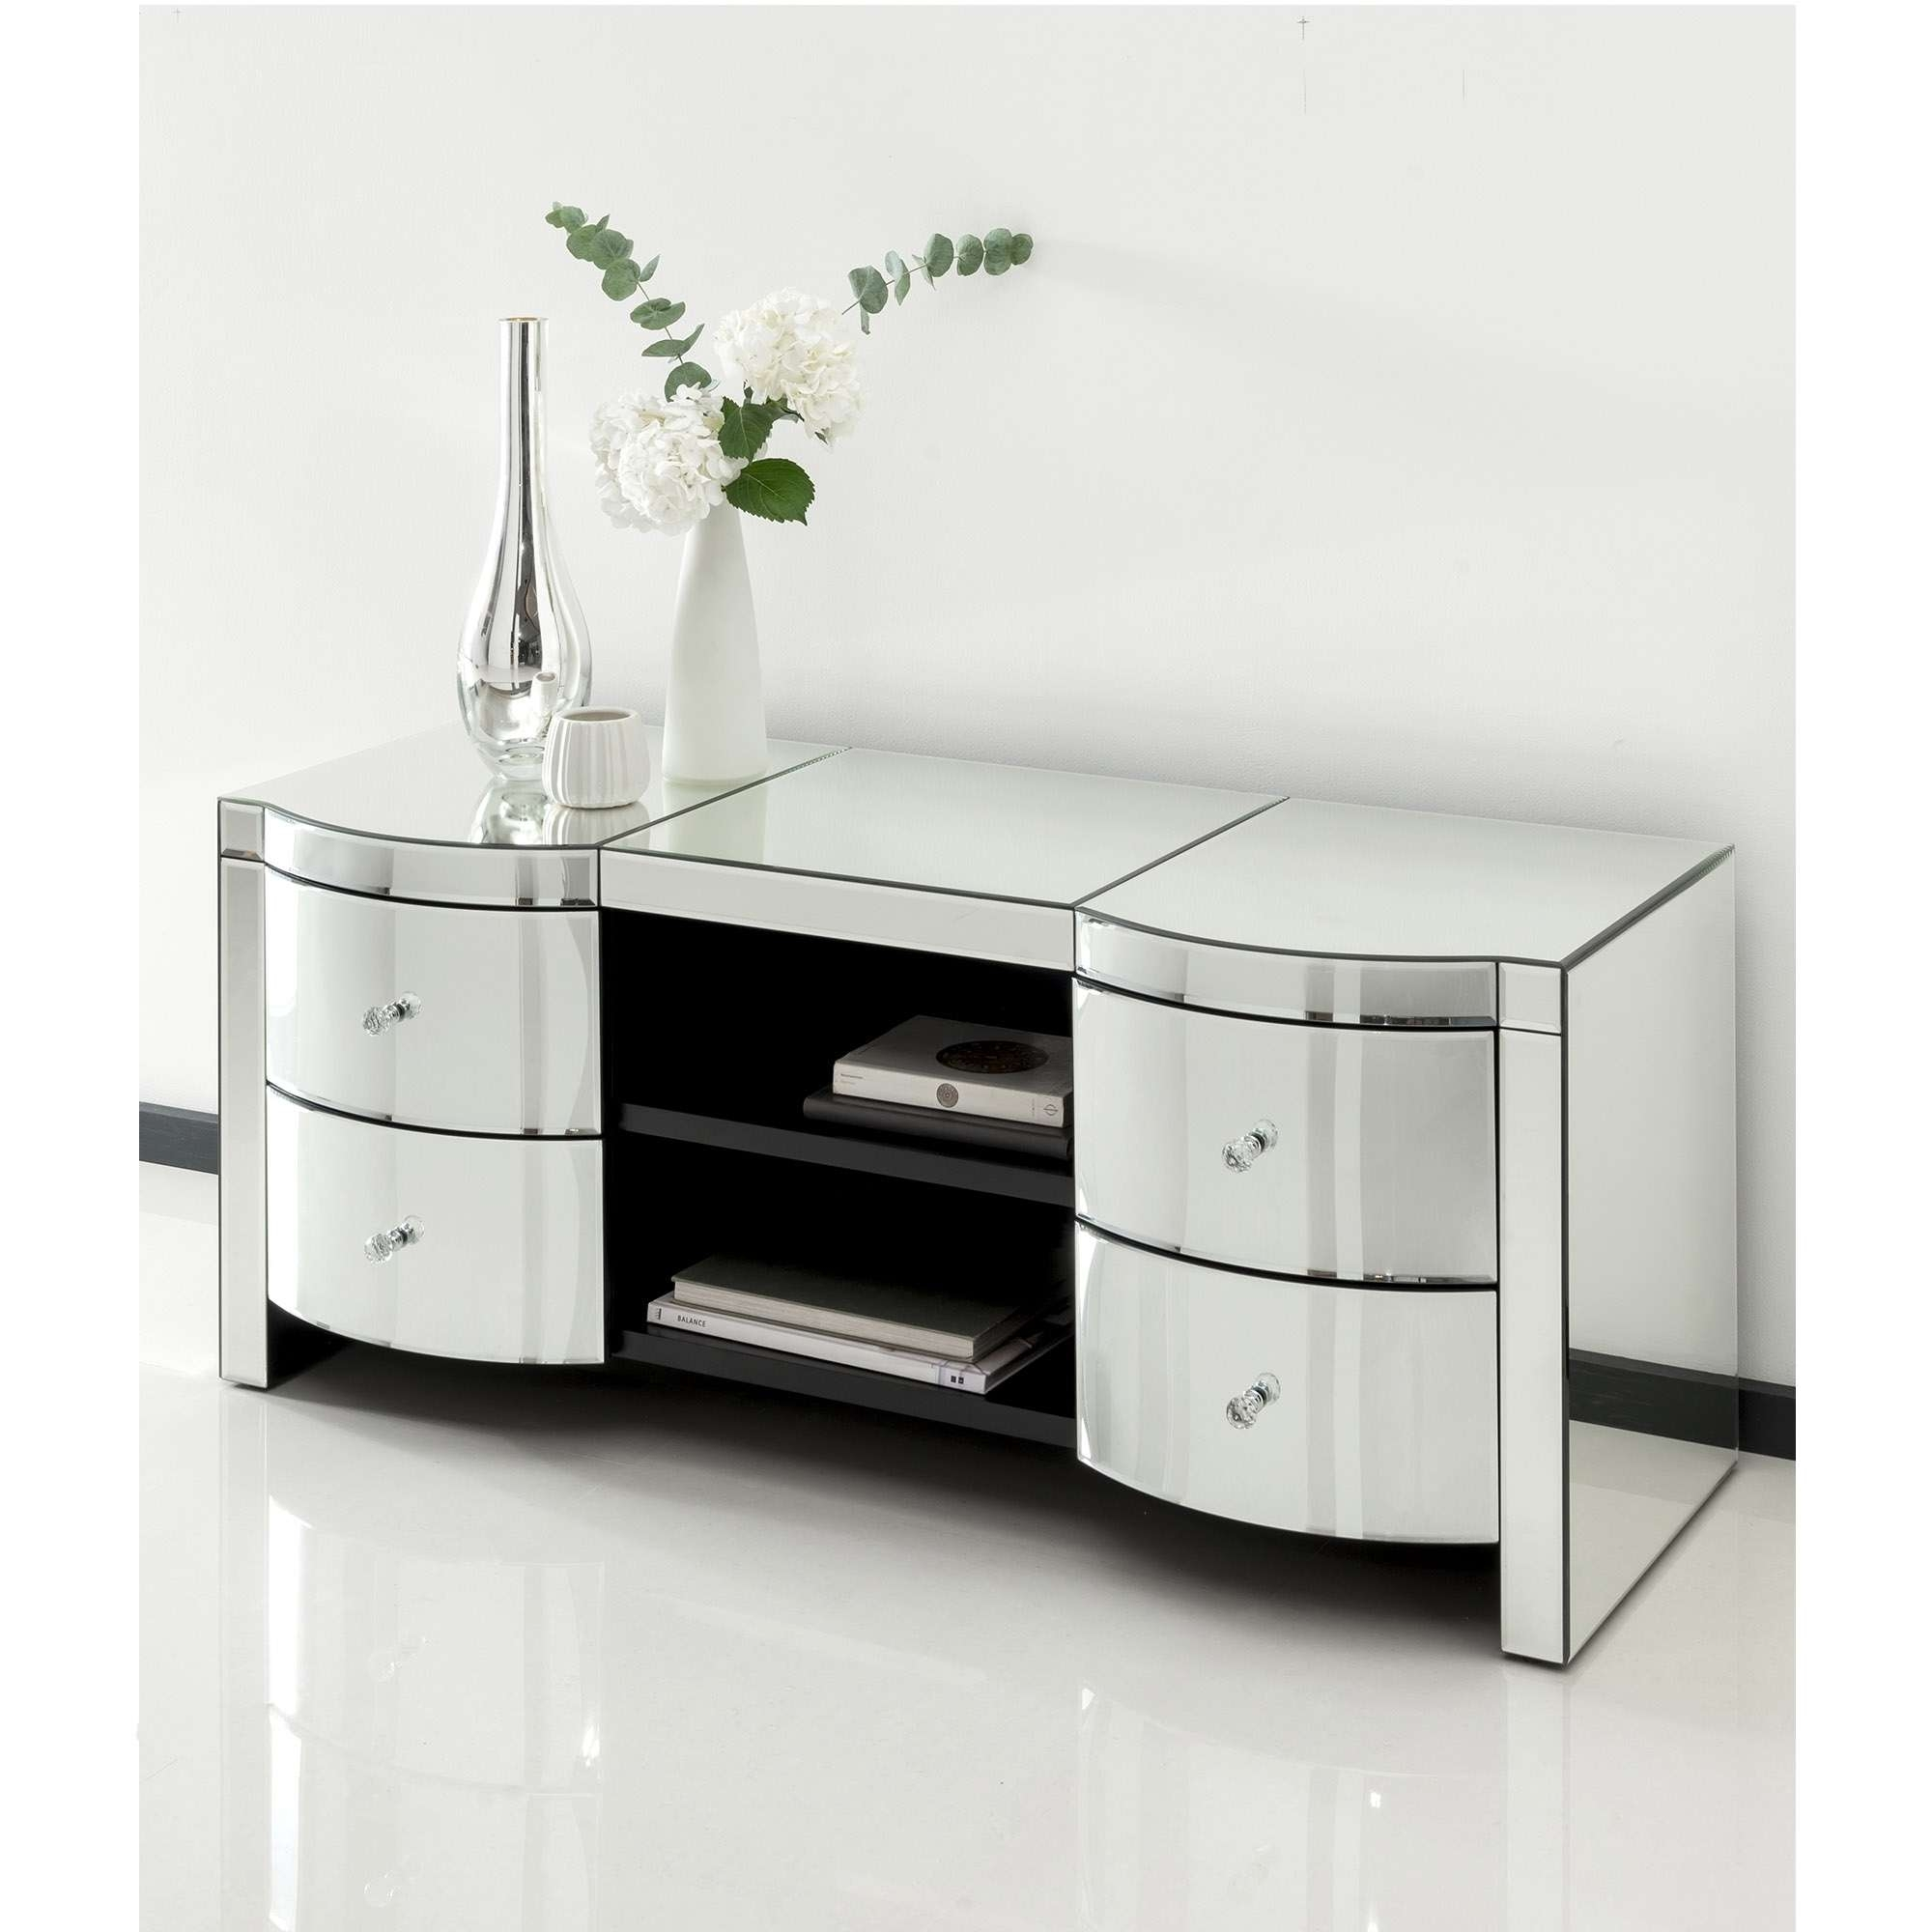 Romano Crystal Mirrored Tv Cabinet | Venetian Mirrored Furniture Inside Mirror Tv Cabinets (View 4 of 20)